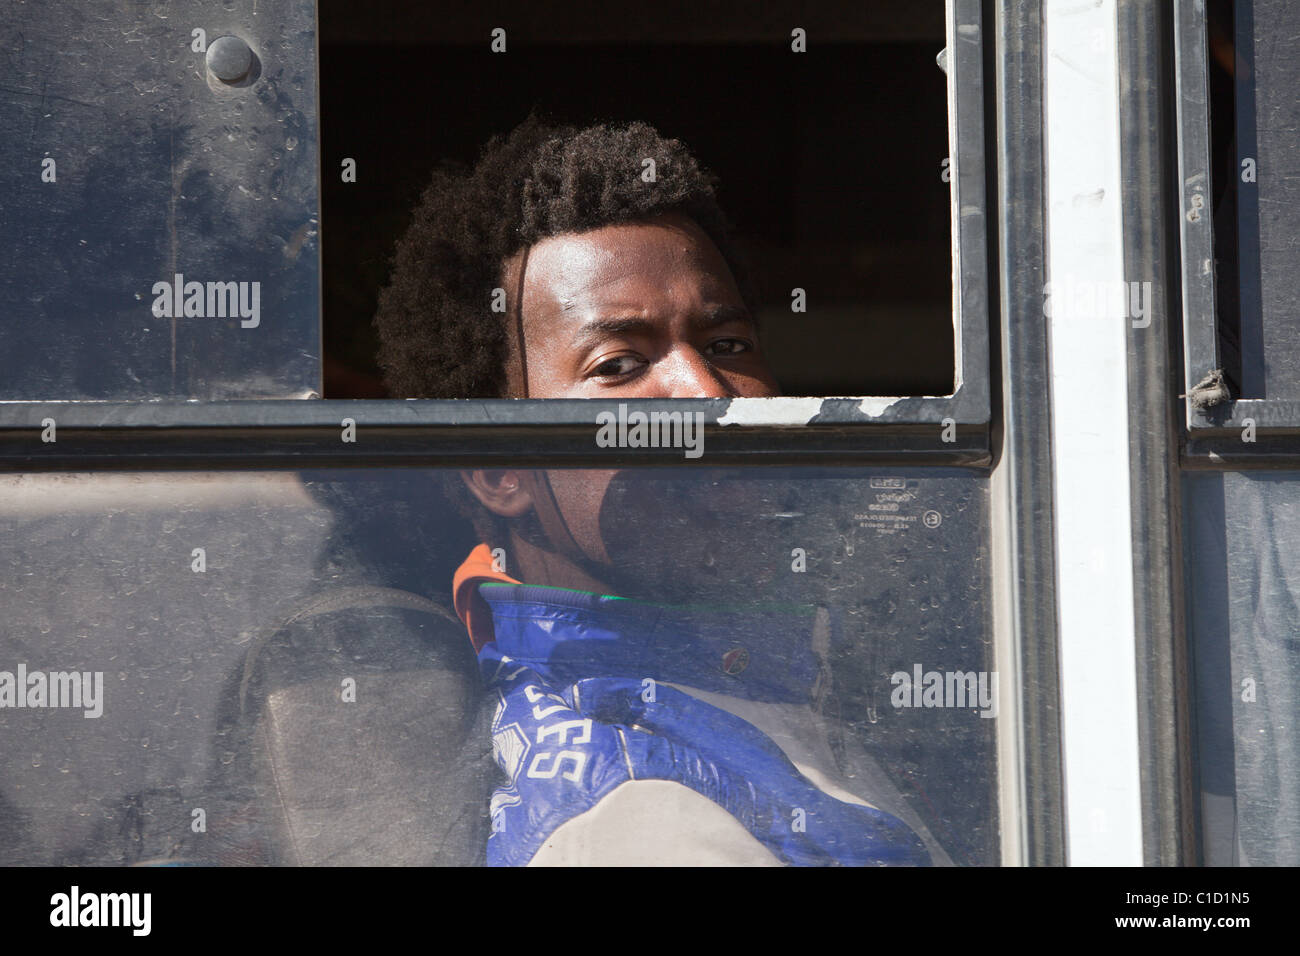 Refugee in a bus on the Tunisian border, Ben Gardane, Tunisia - Stock Image